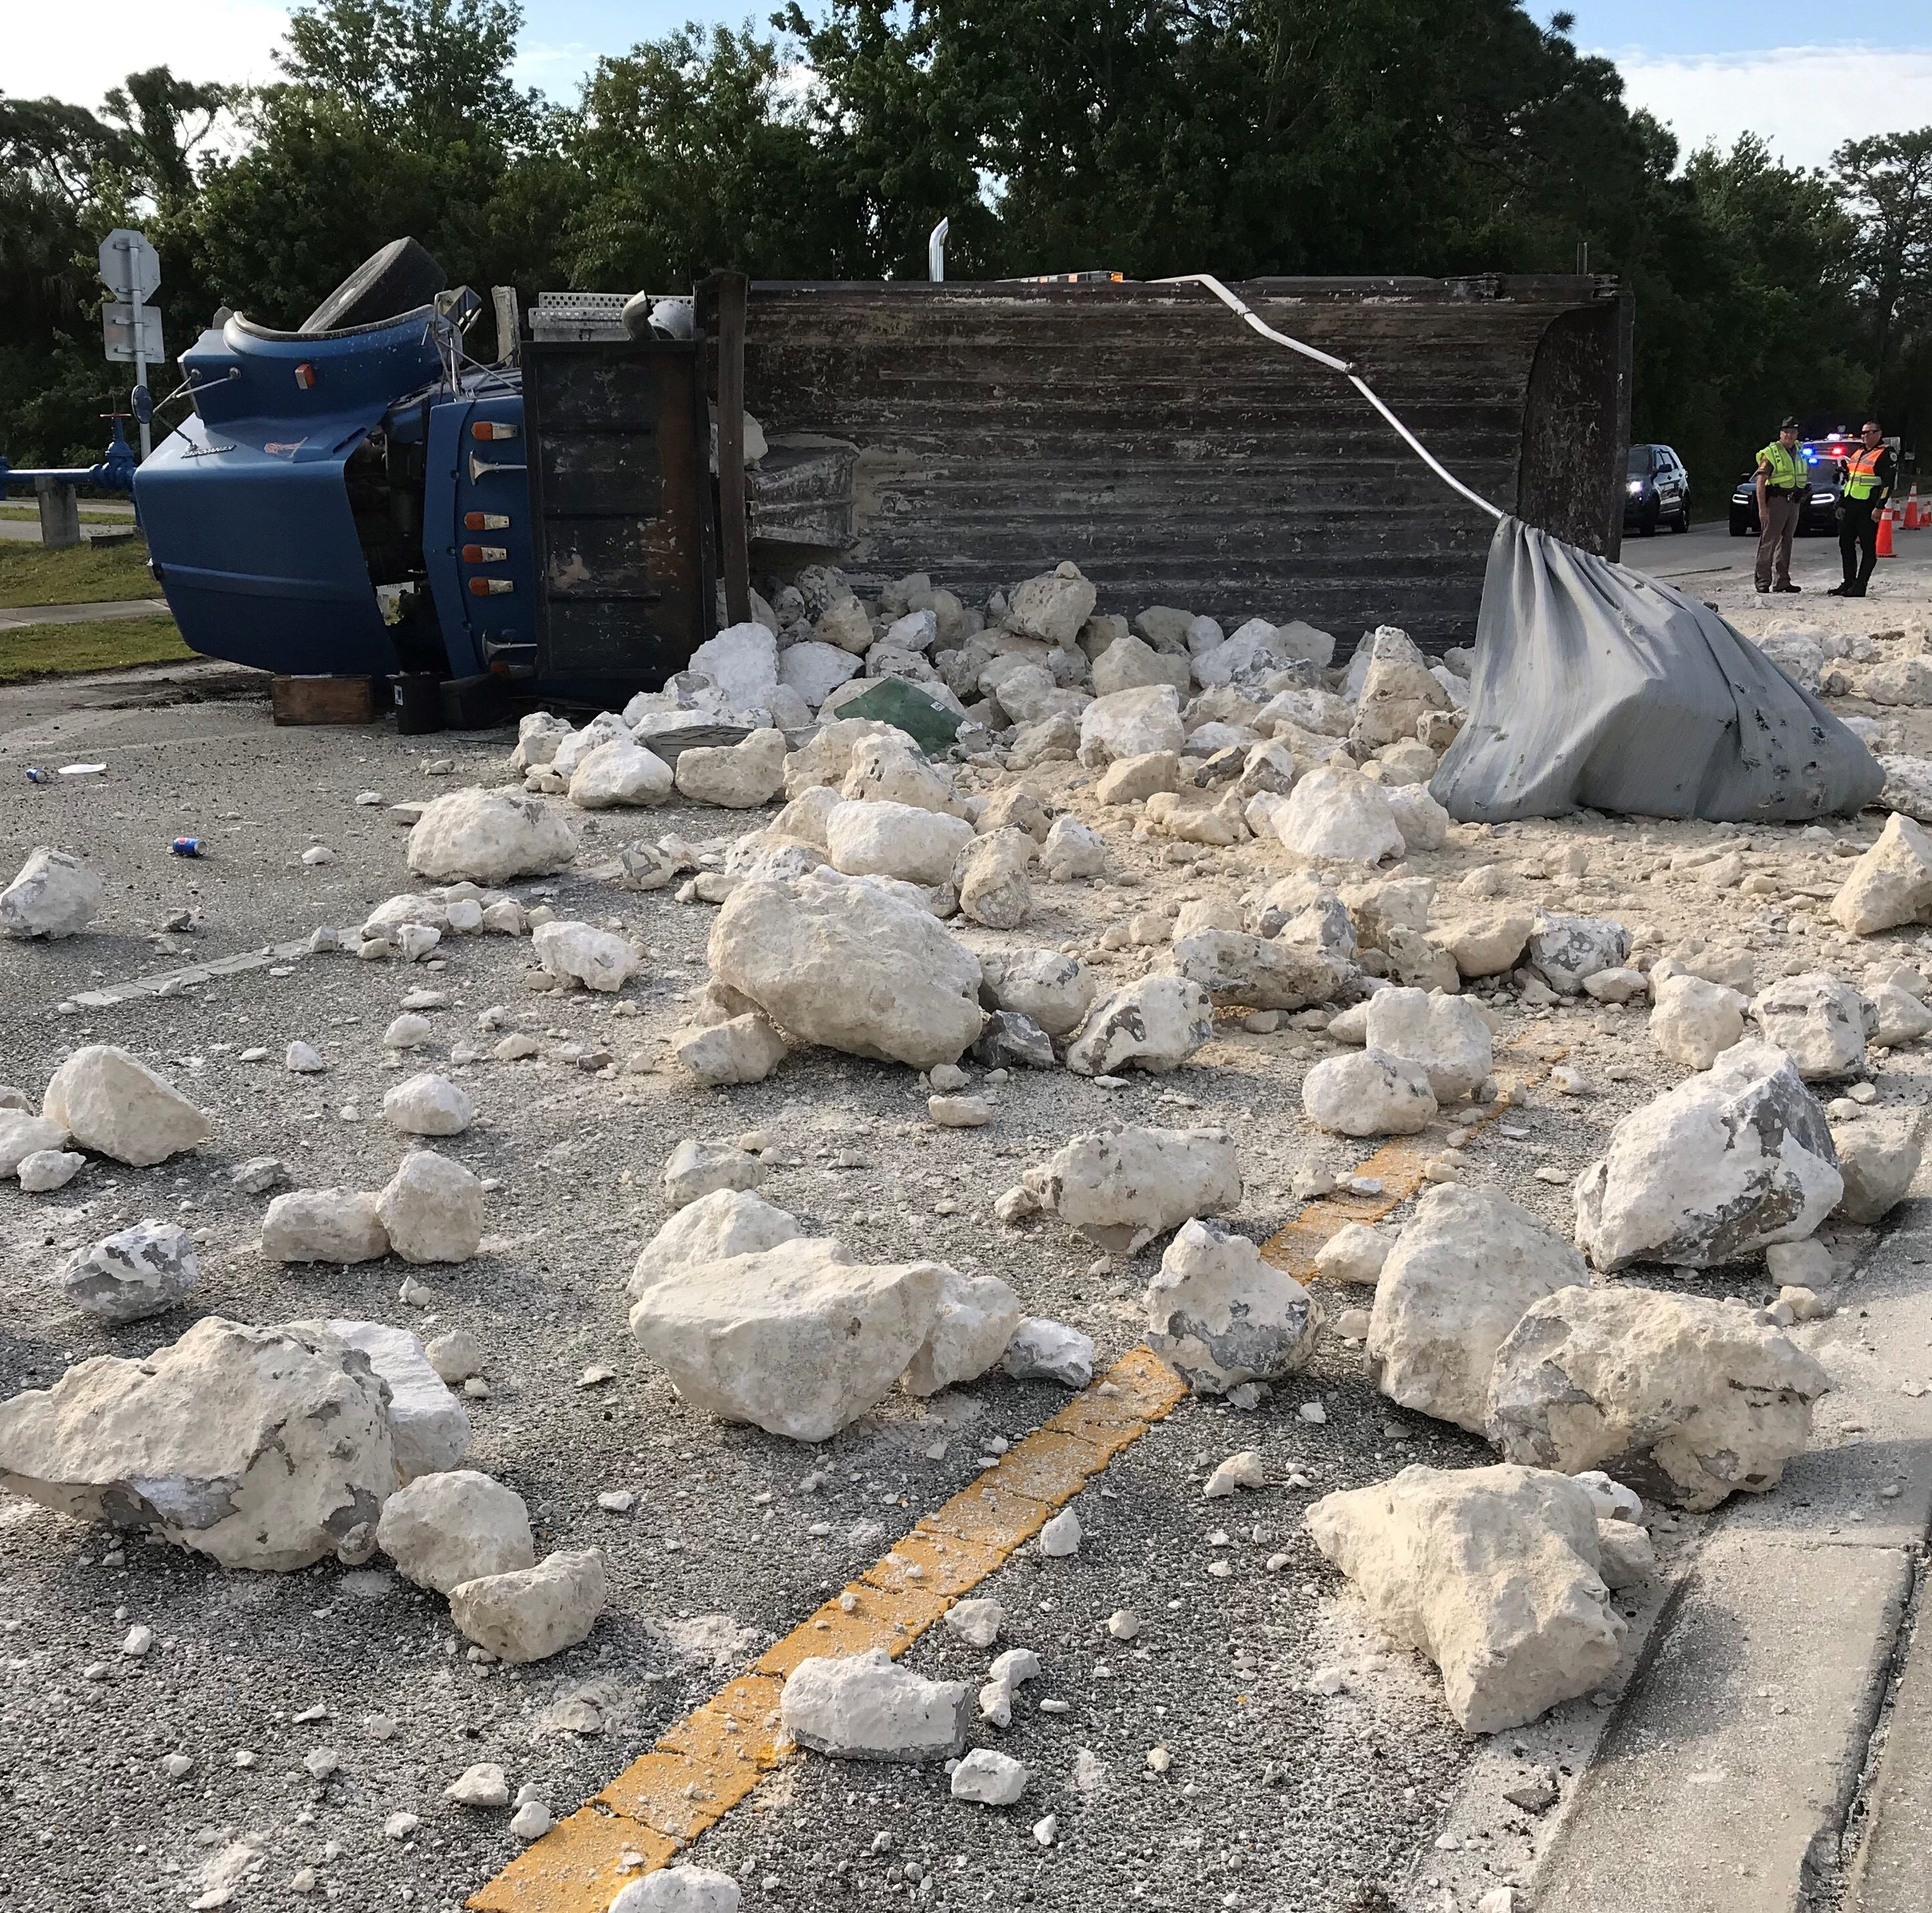 Dump truck flips over in Merritt Island, scatters rocks along roadway